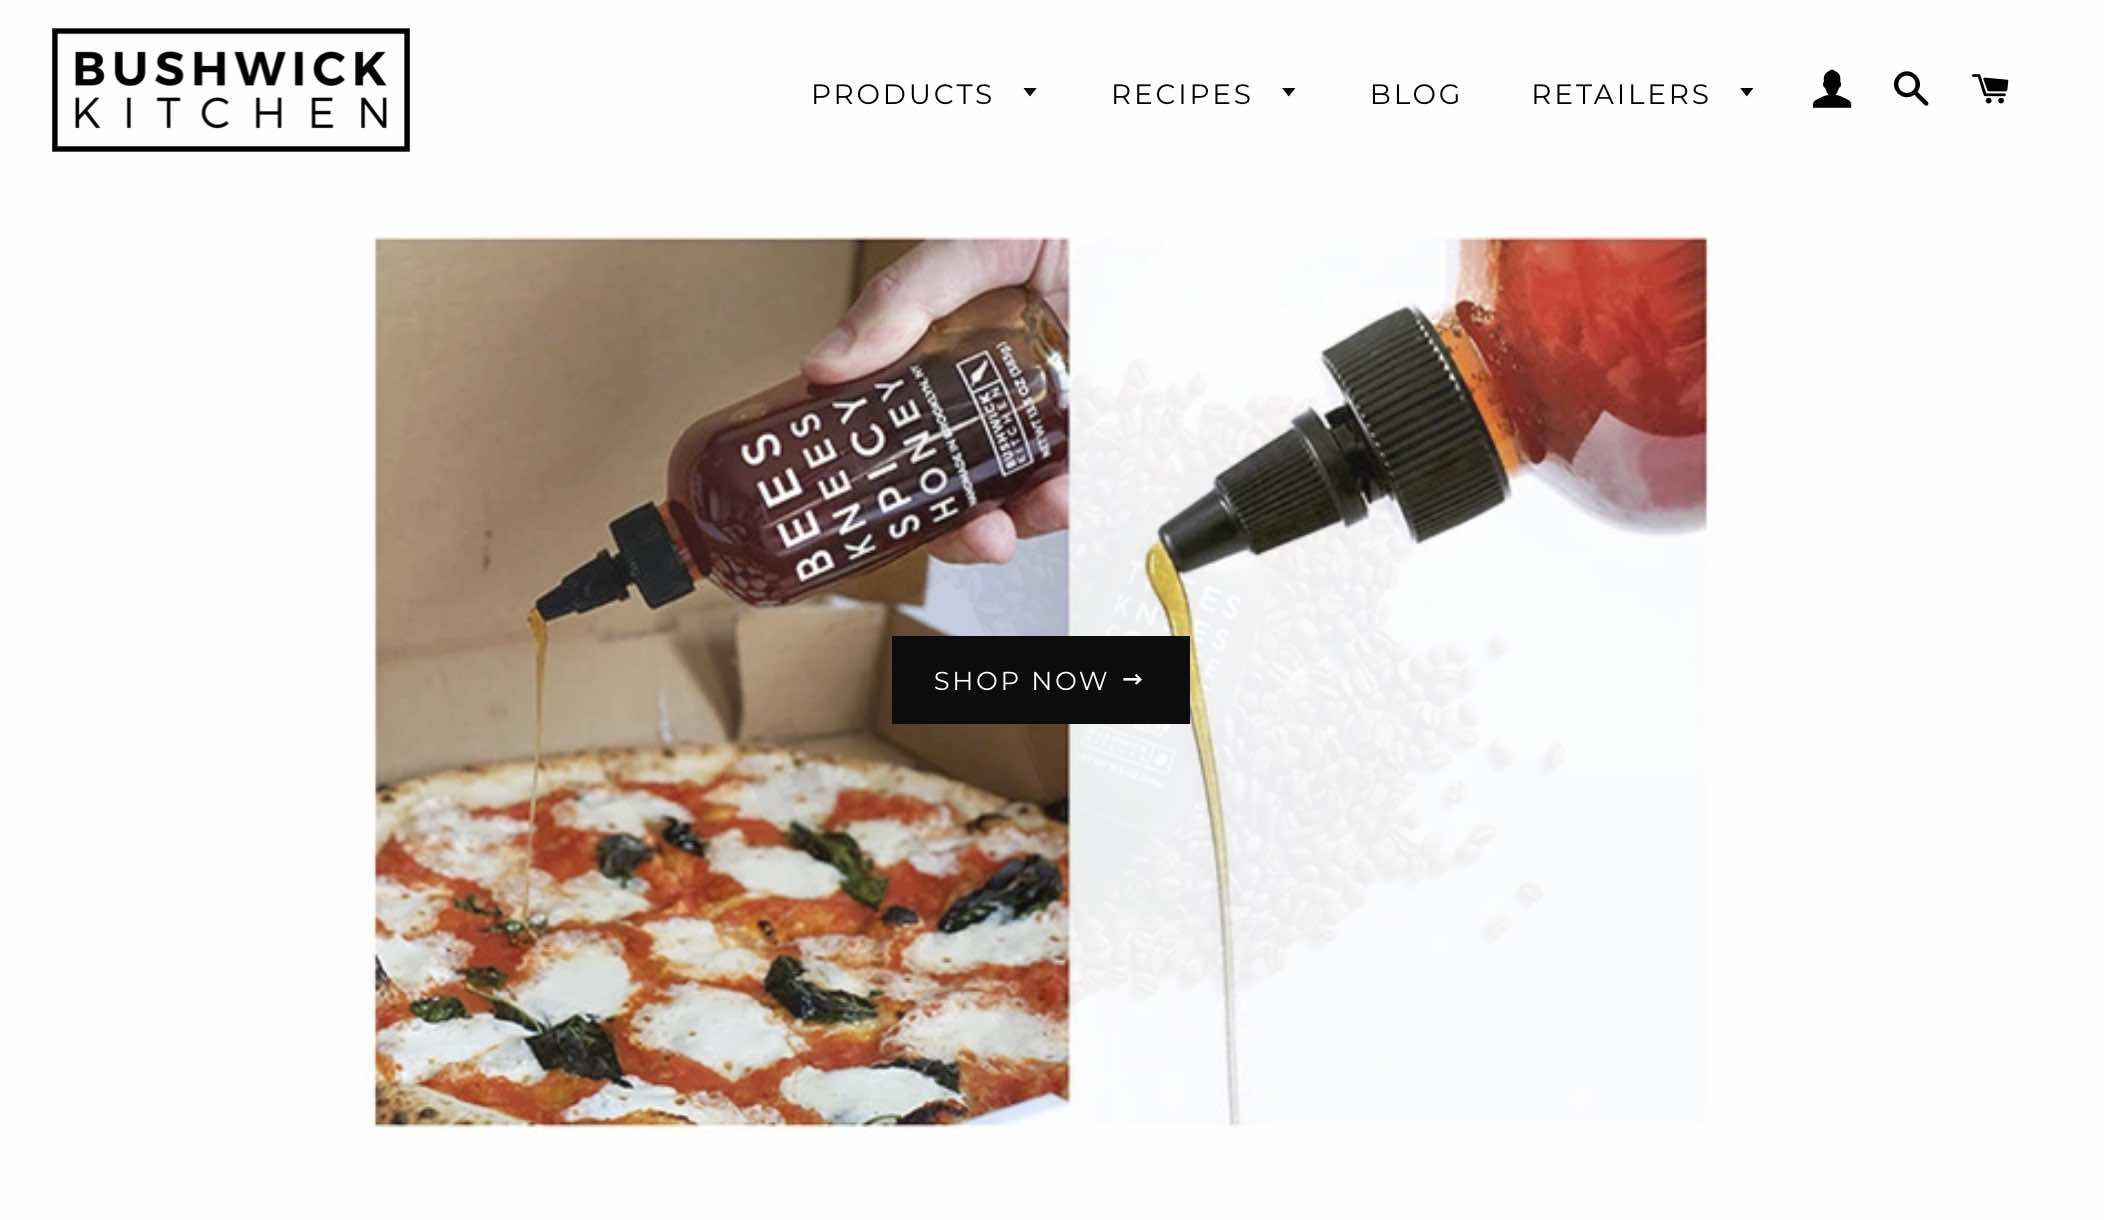 Commerce business Bushwick Kitchen's online store landing page.